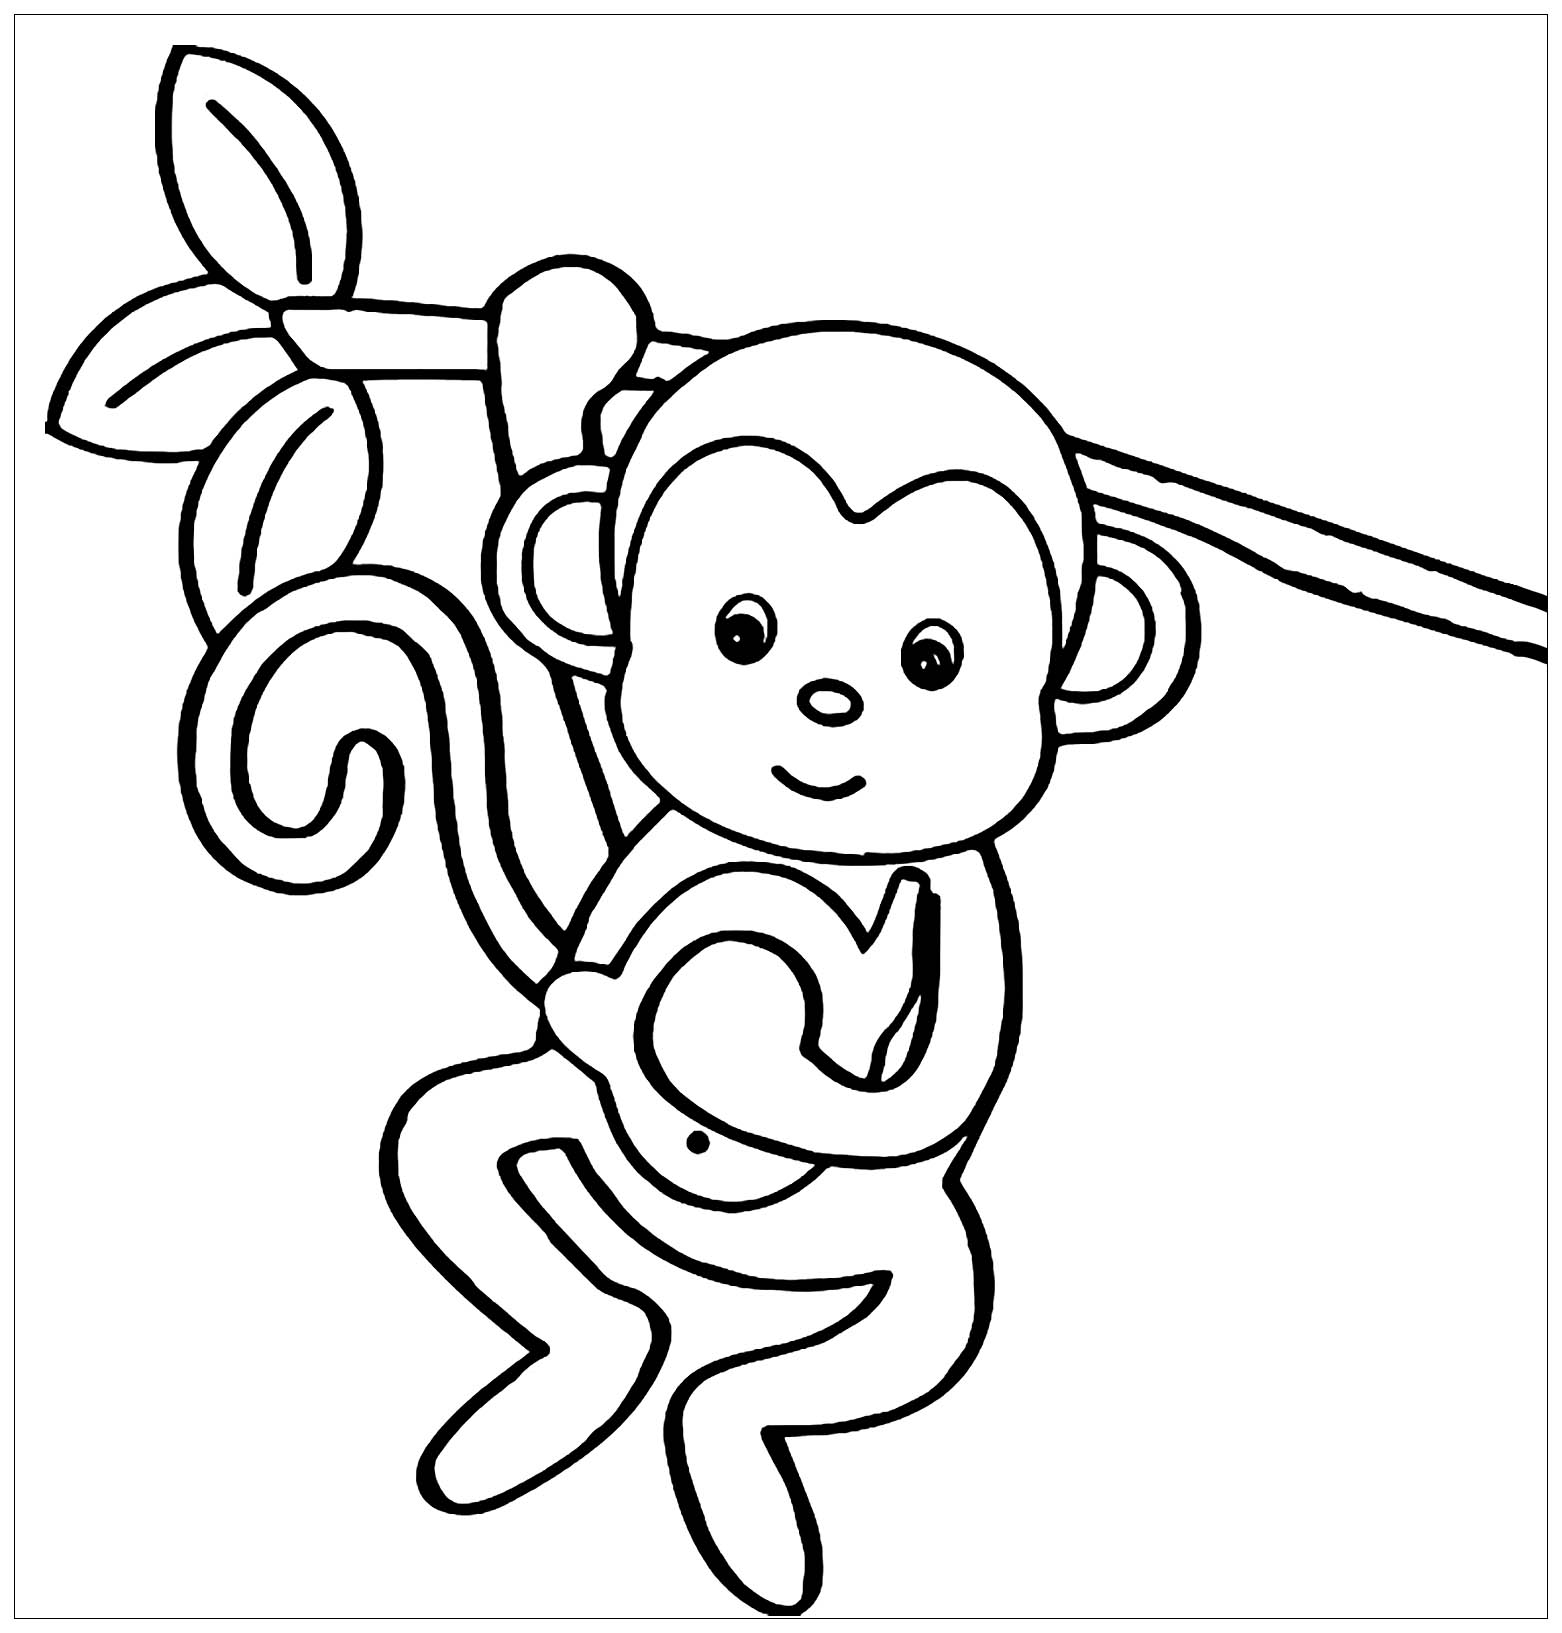 coloring pic of monkey monkey coloring pages free download on clipartmag monkey pic of coloring